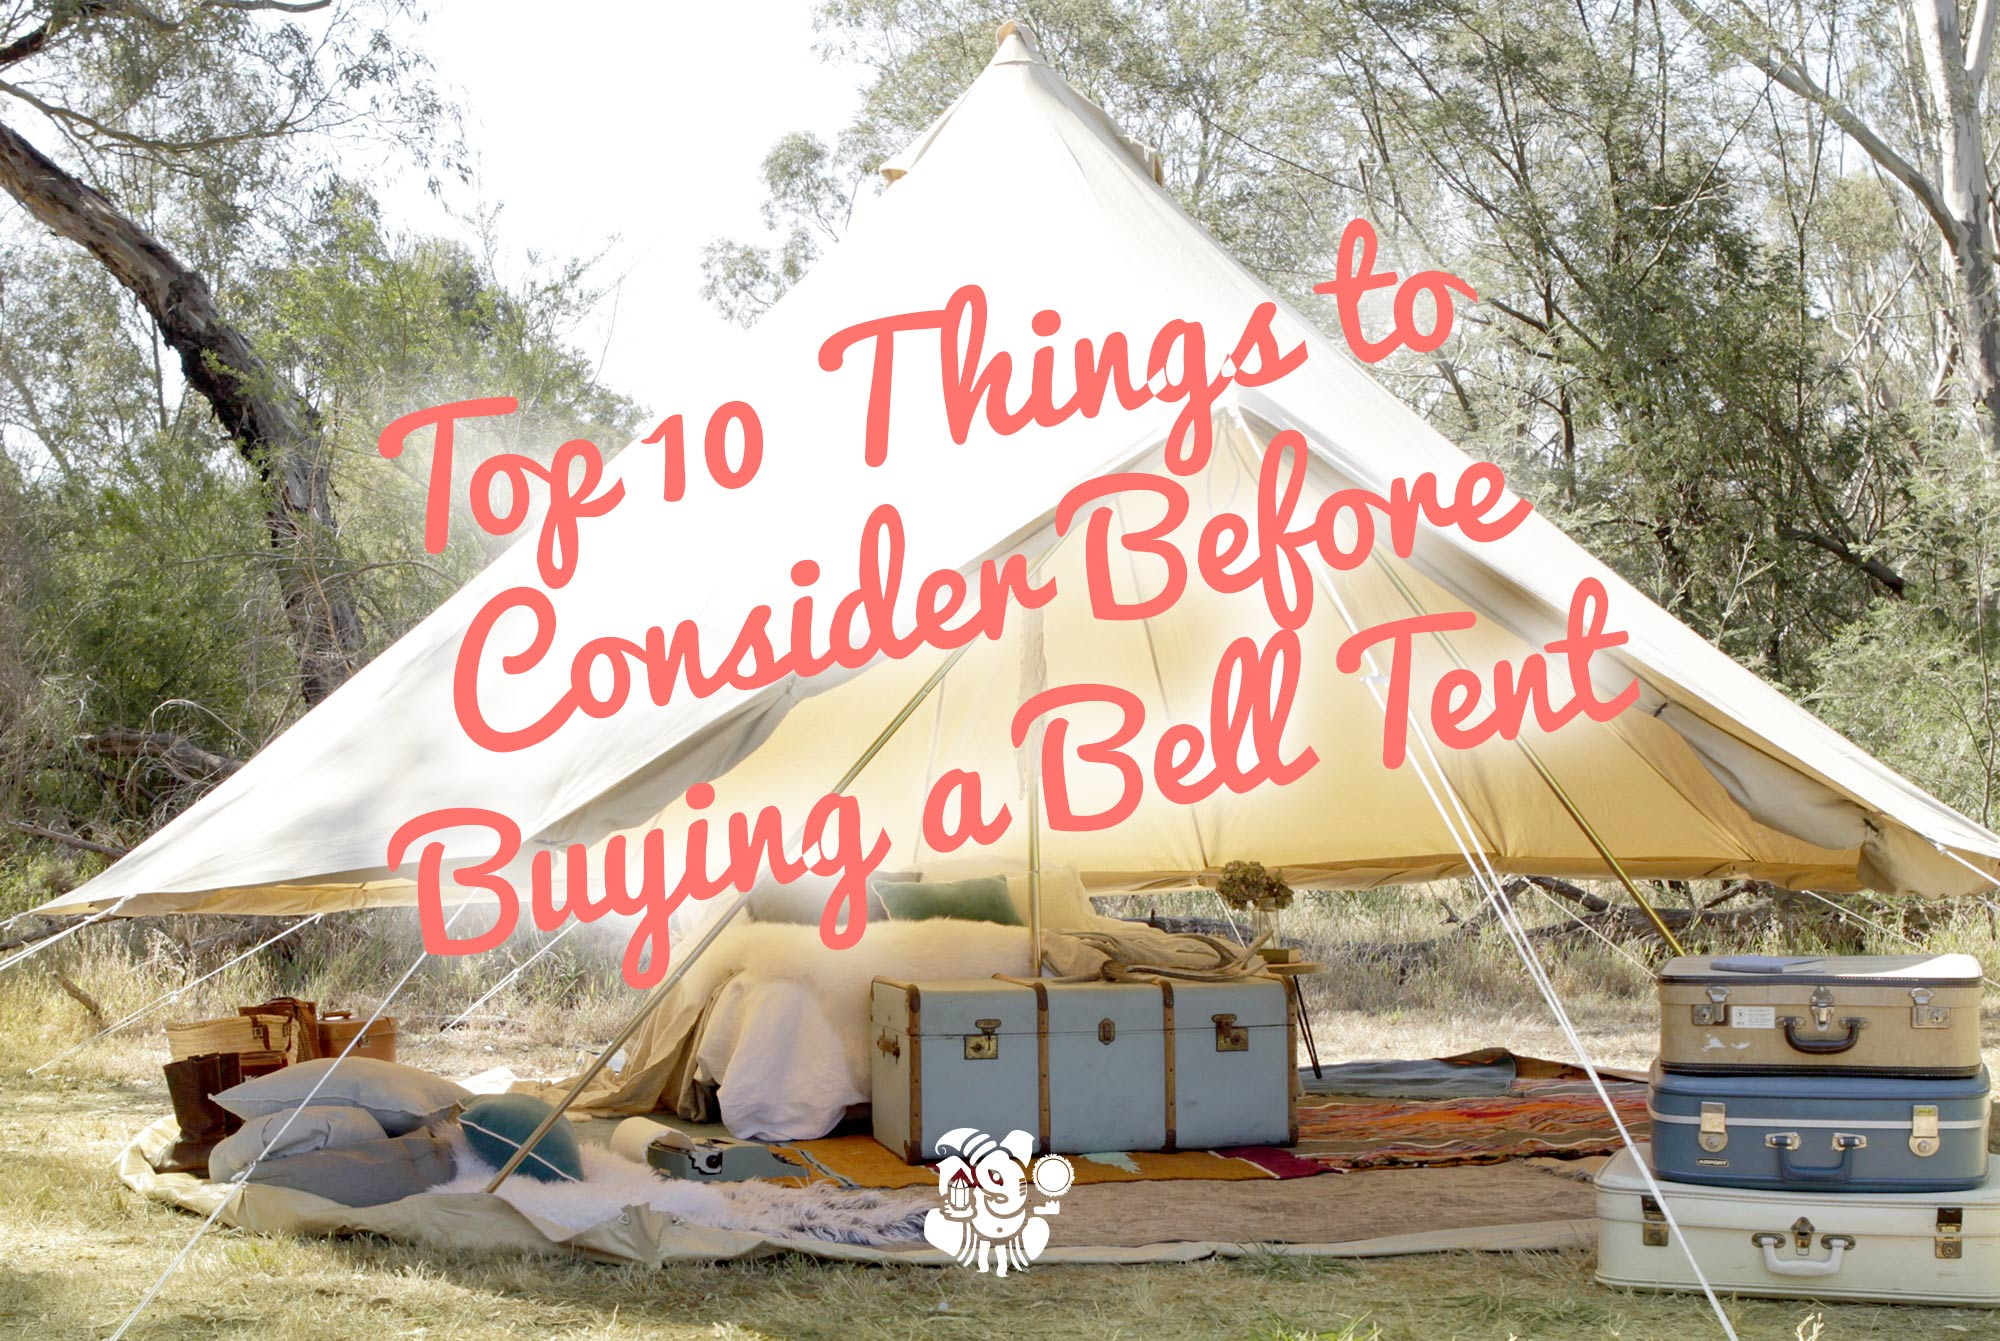 Top 10 tings to consider before buying a bell tent